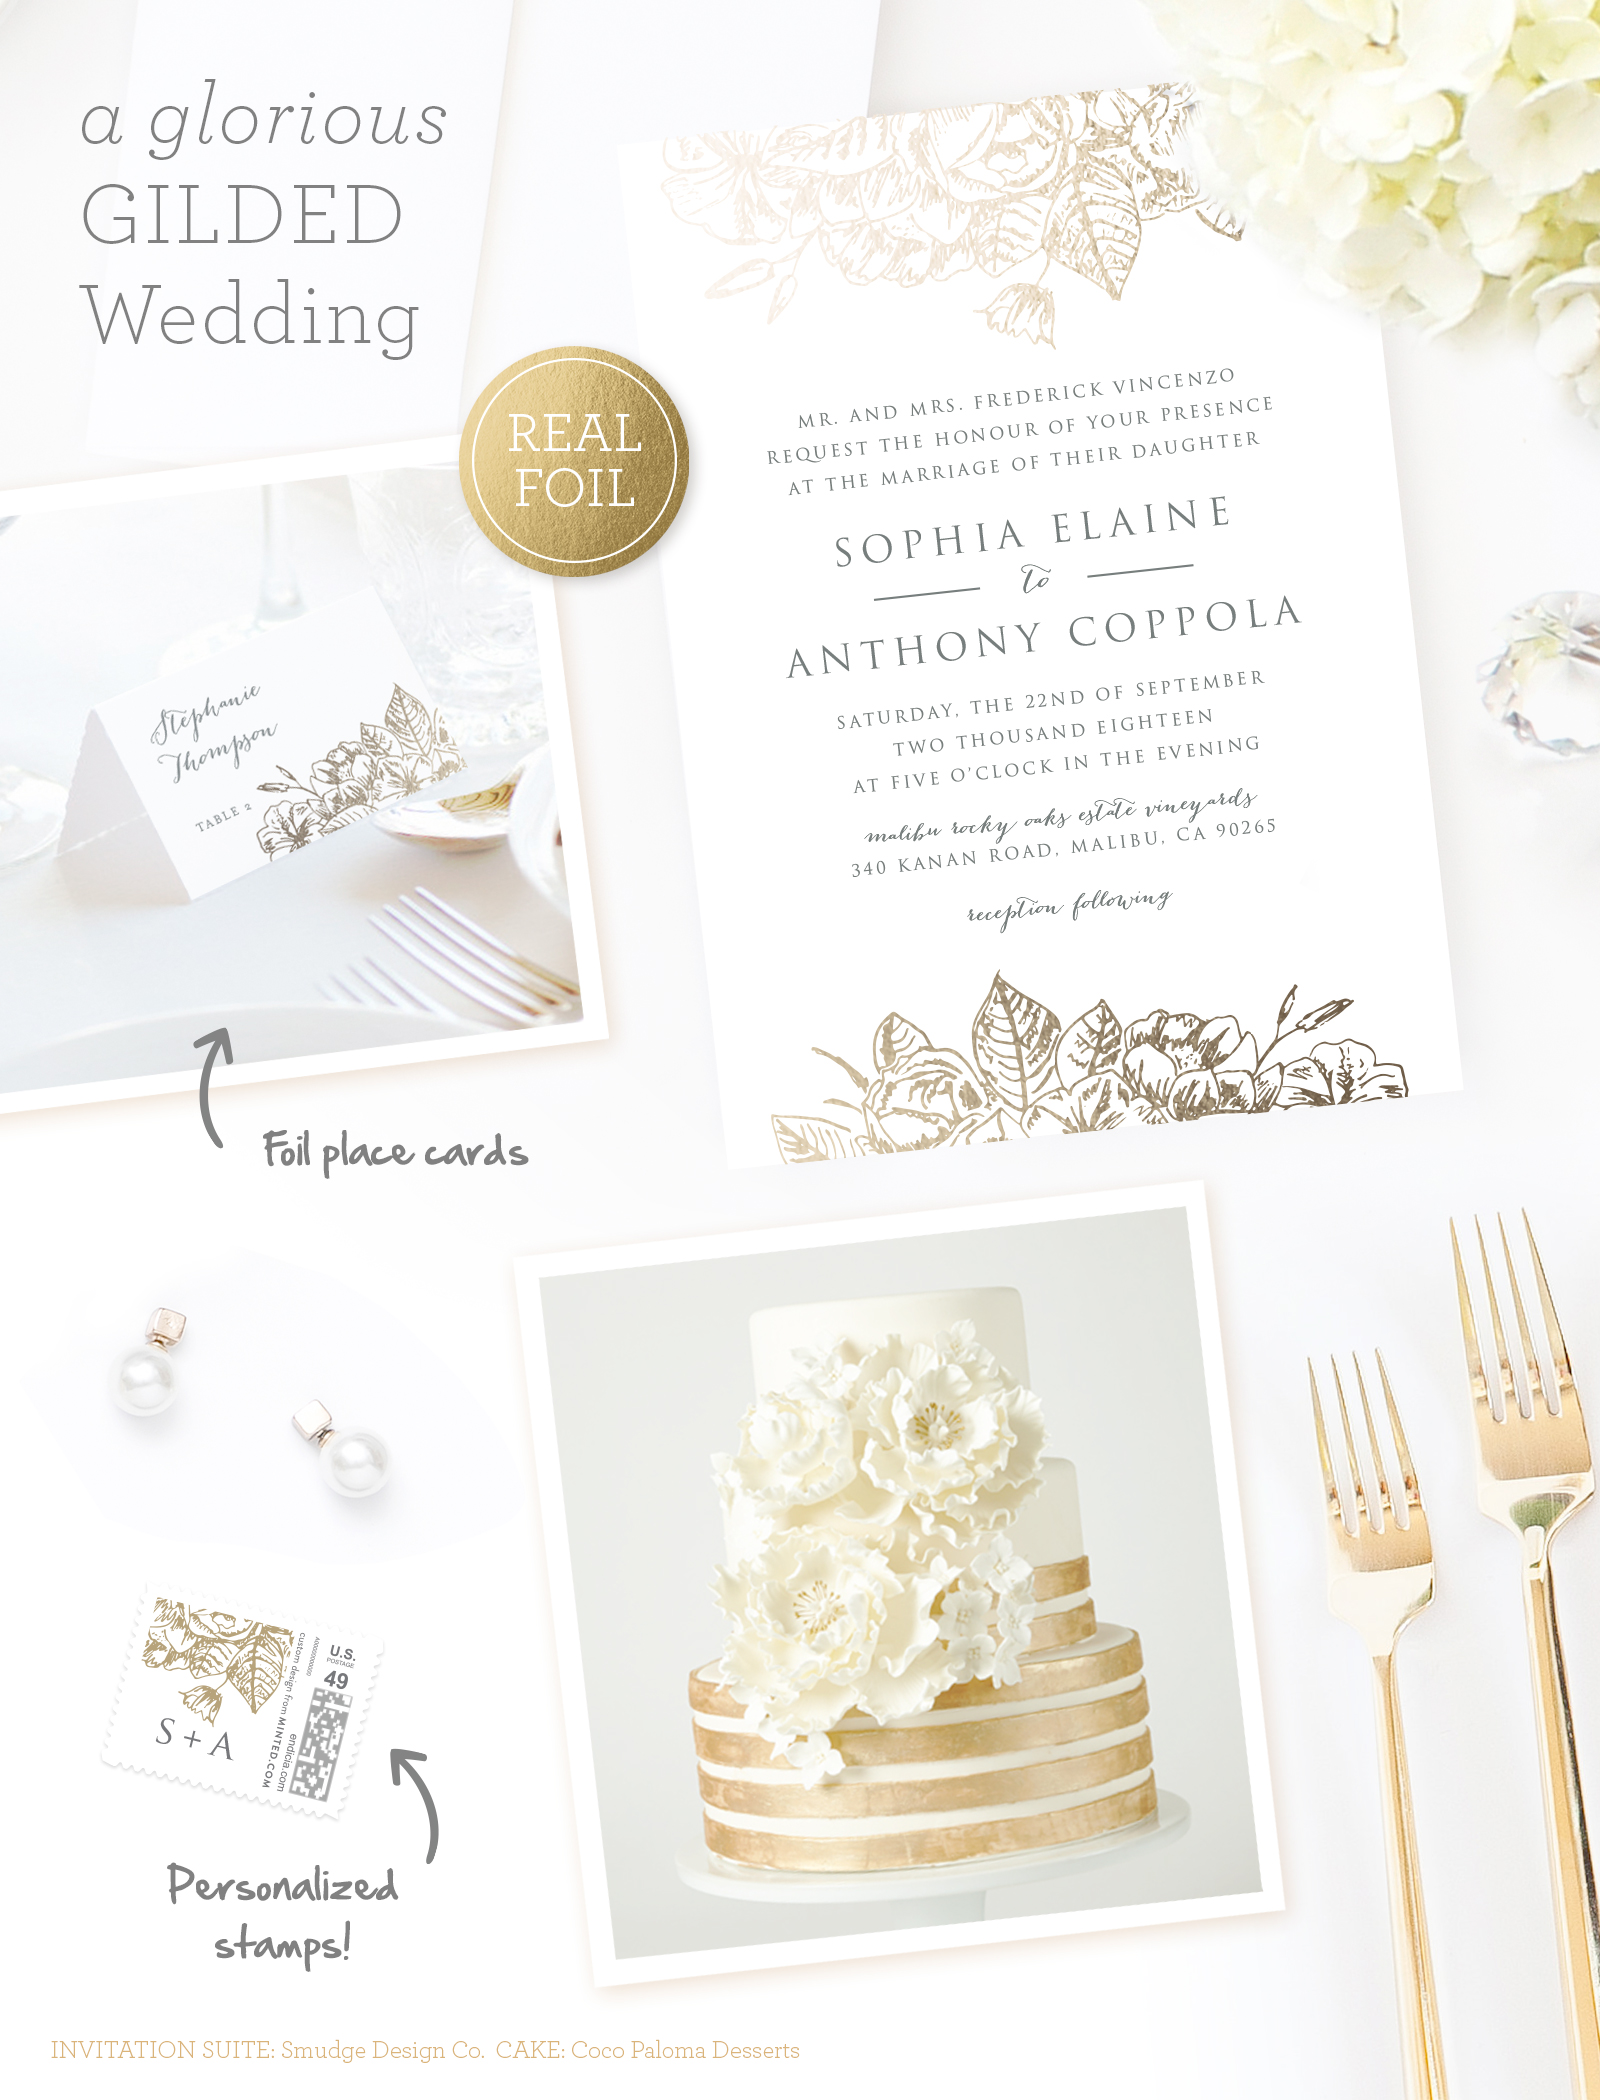 gilded-wildflowers-wedding-smudge-design.jpg